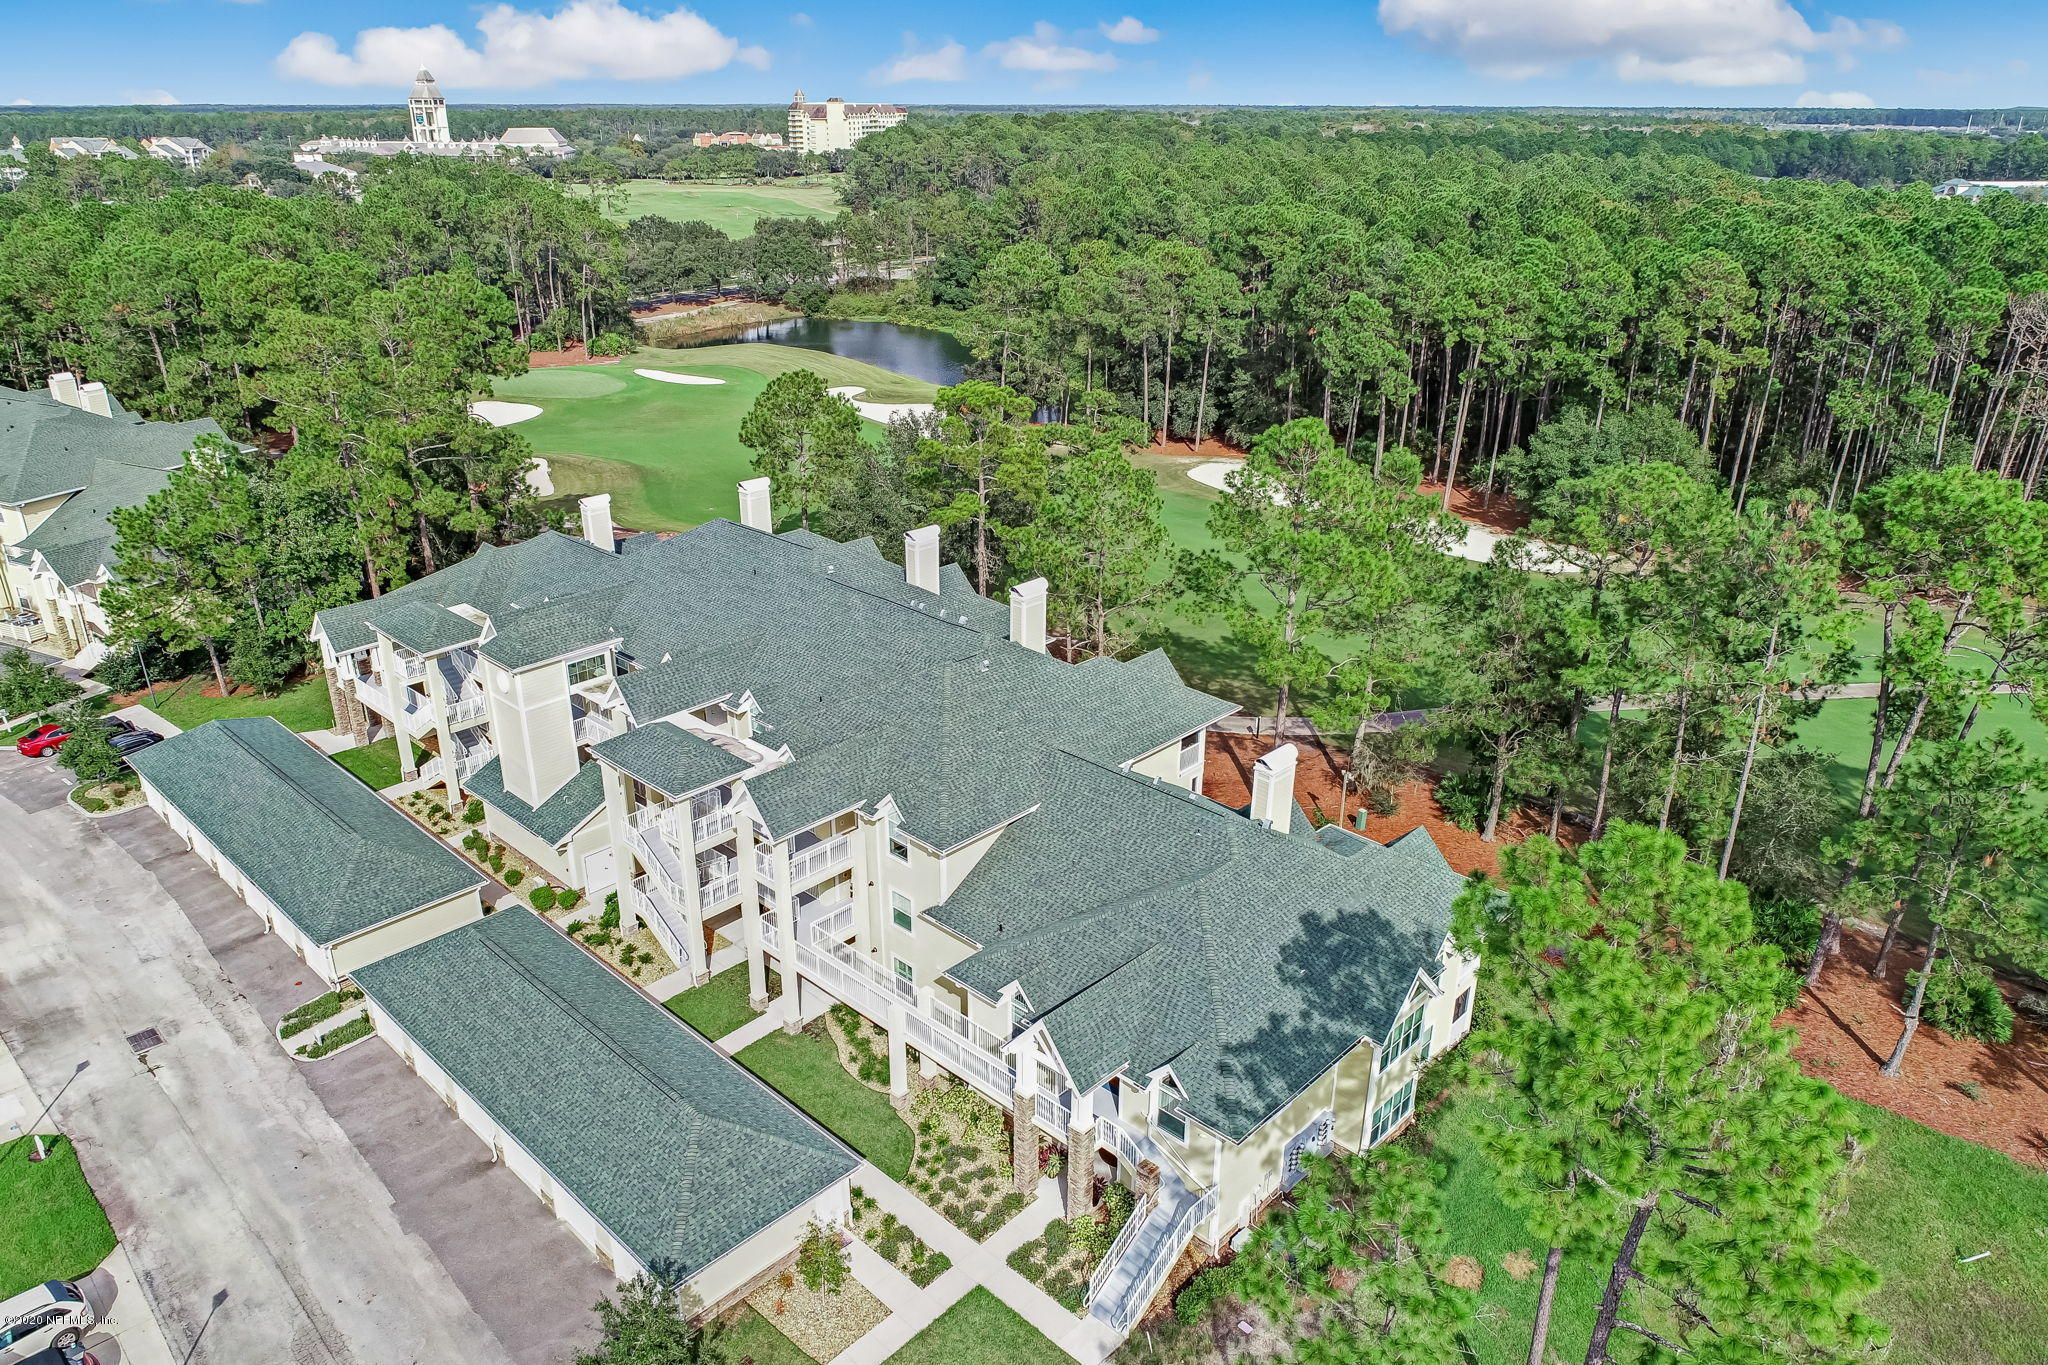 335 SHORE, ST AUGUSTINE, FLORIDA 32092, 3 Bedrooms Bedrooms, ,3 BathroomsBathrooms,Residential,For sale,SHORE,1080238